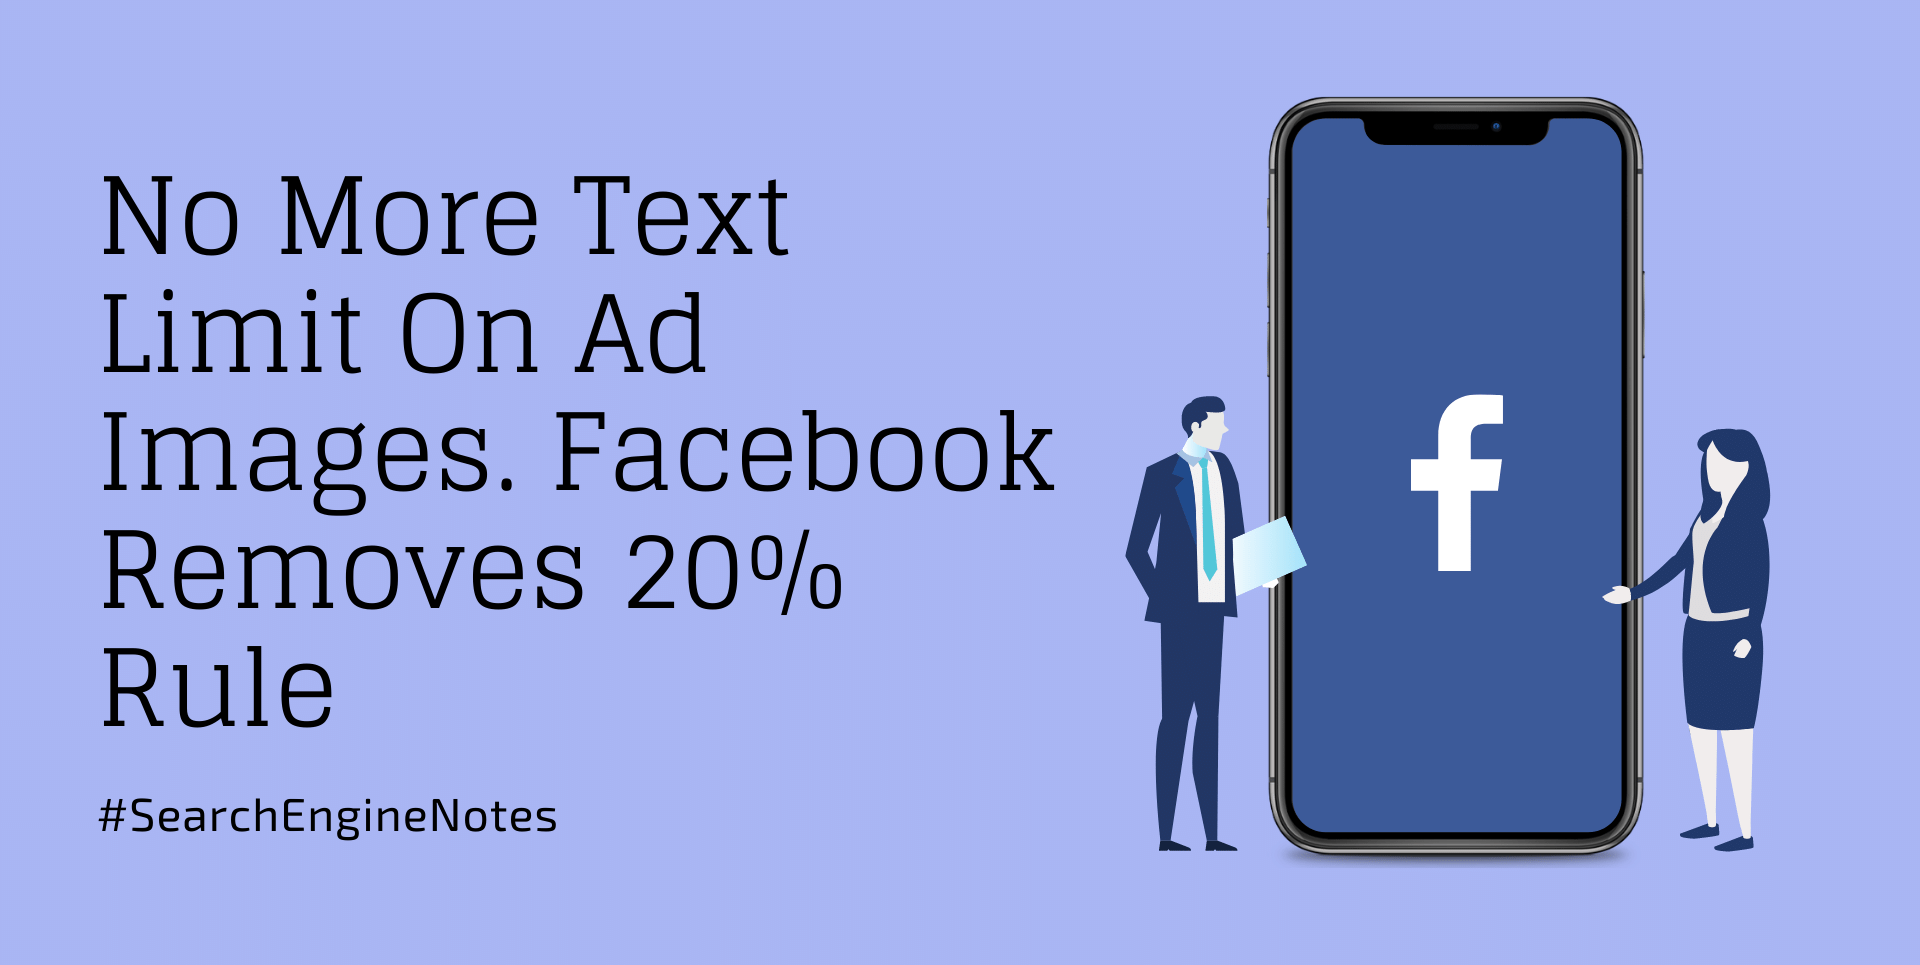 No More Text Limit on Ad Images. Facebook Removes 20% Rule